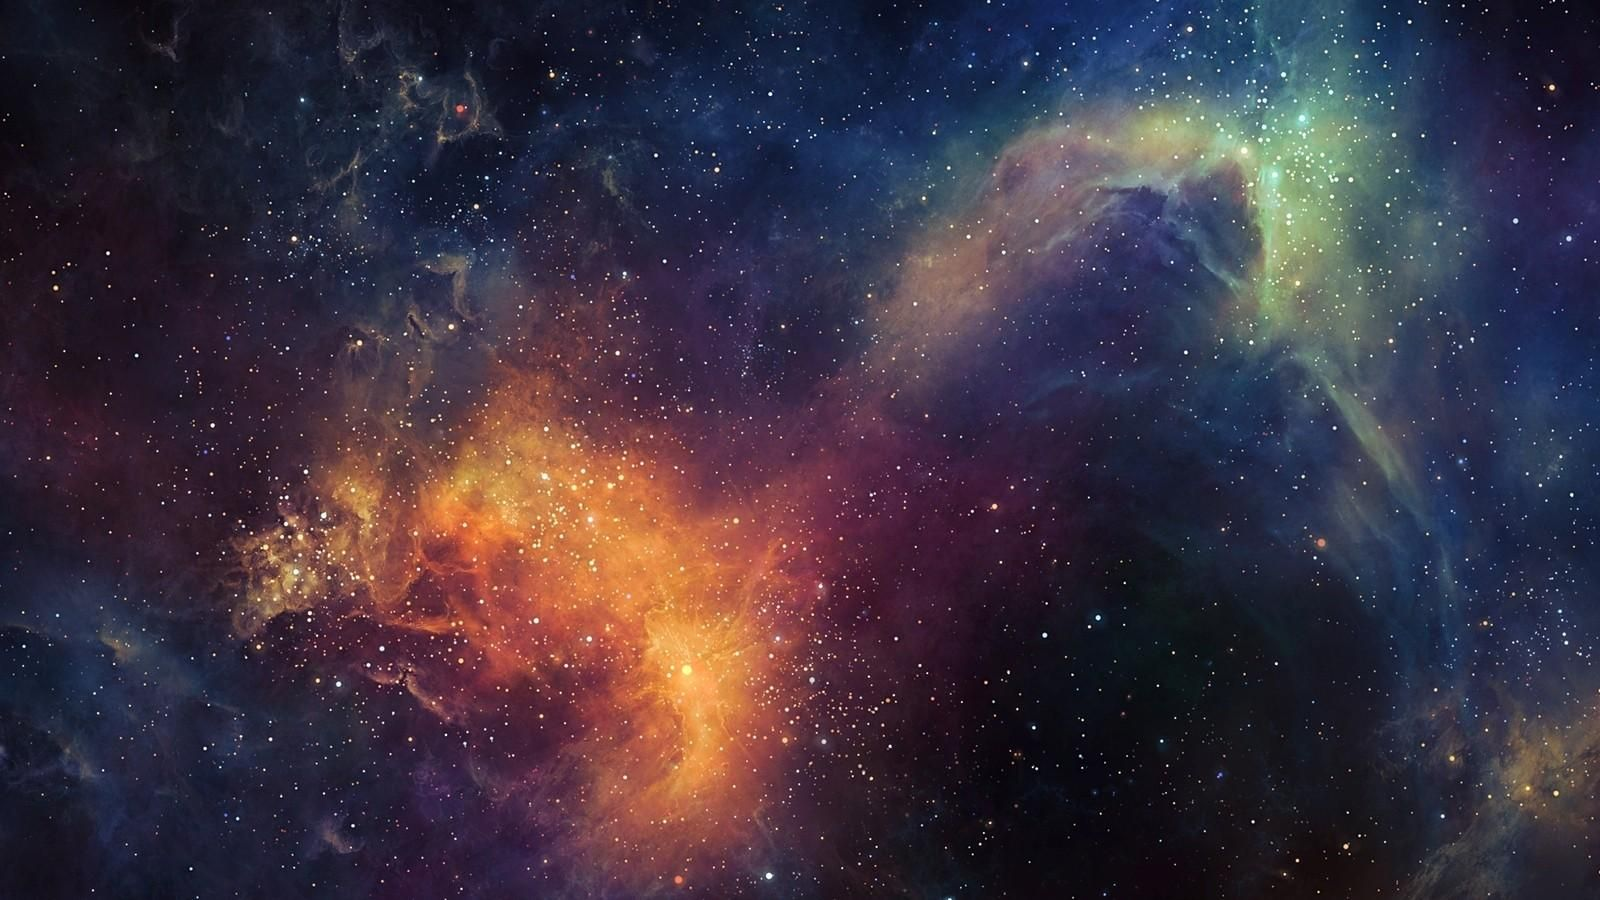 40 Stunning Stars Wallpapers Ginva Wallpaper Space Star Wallpaper Nebula